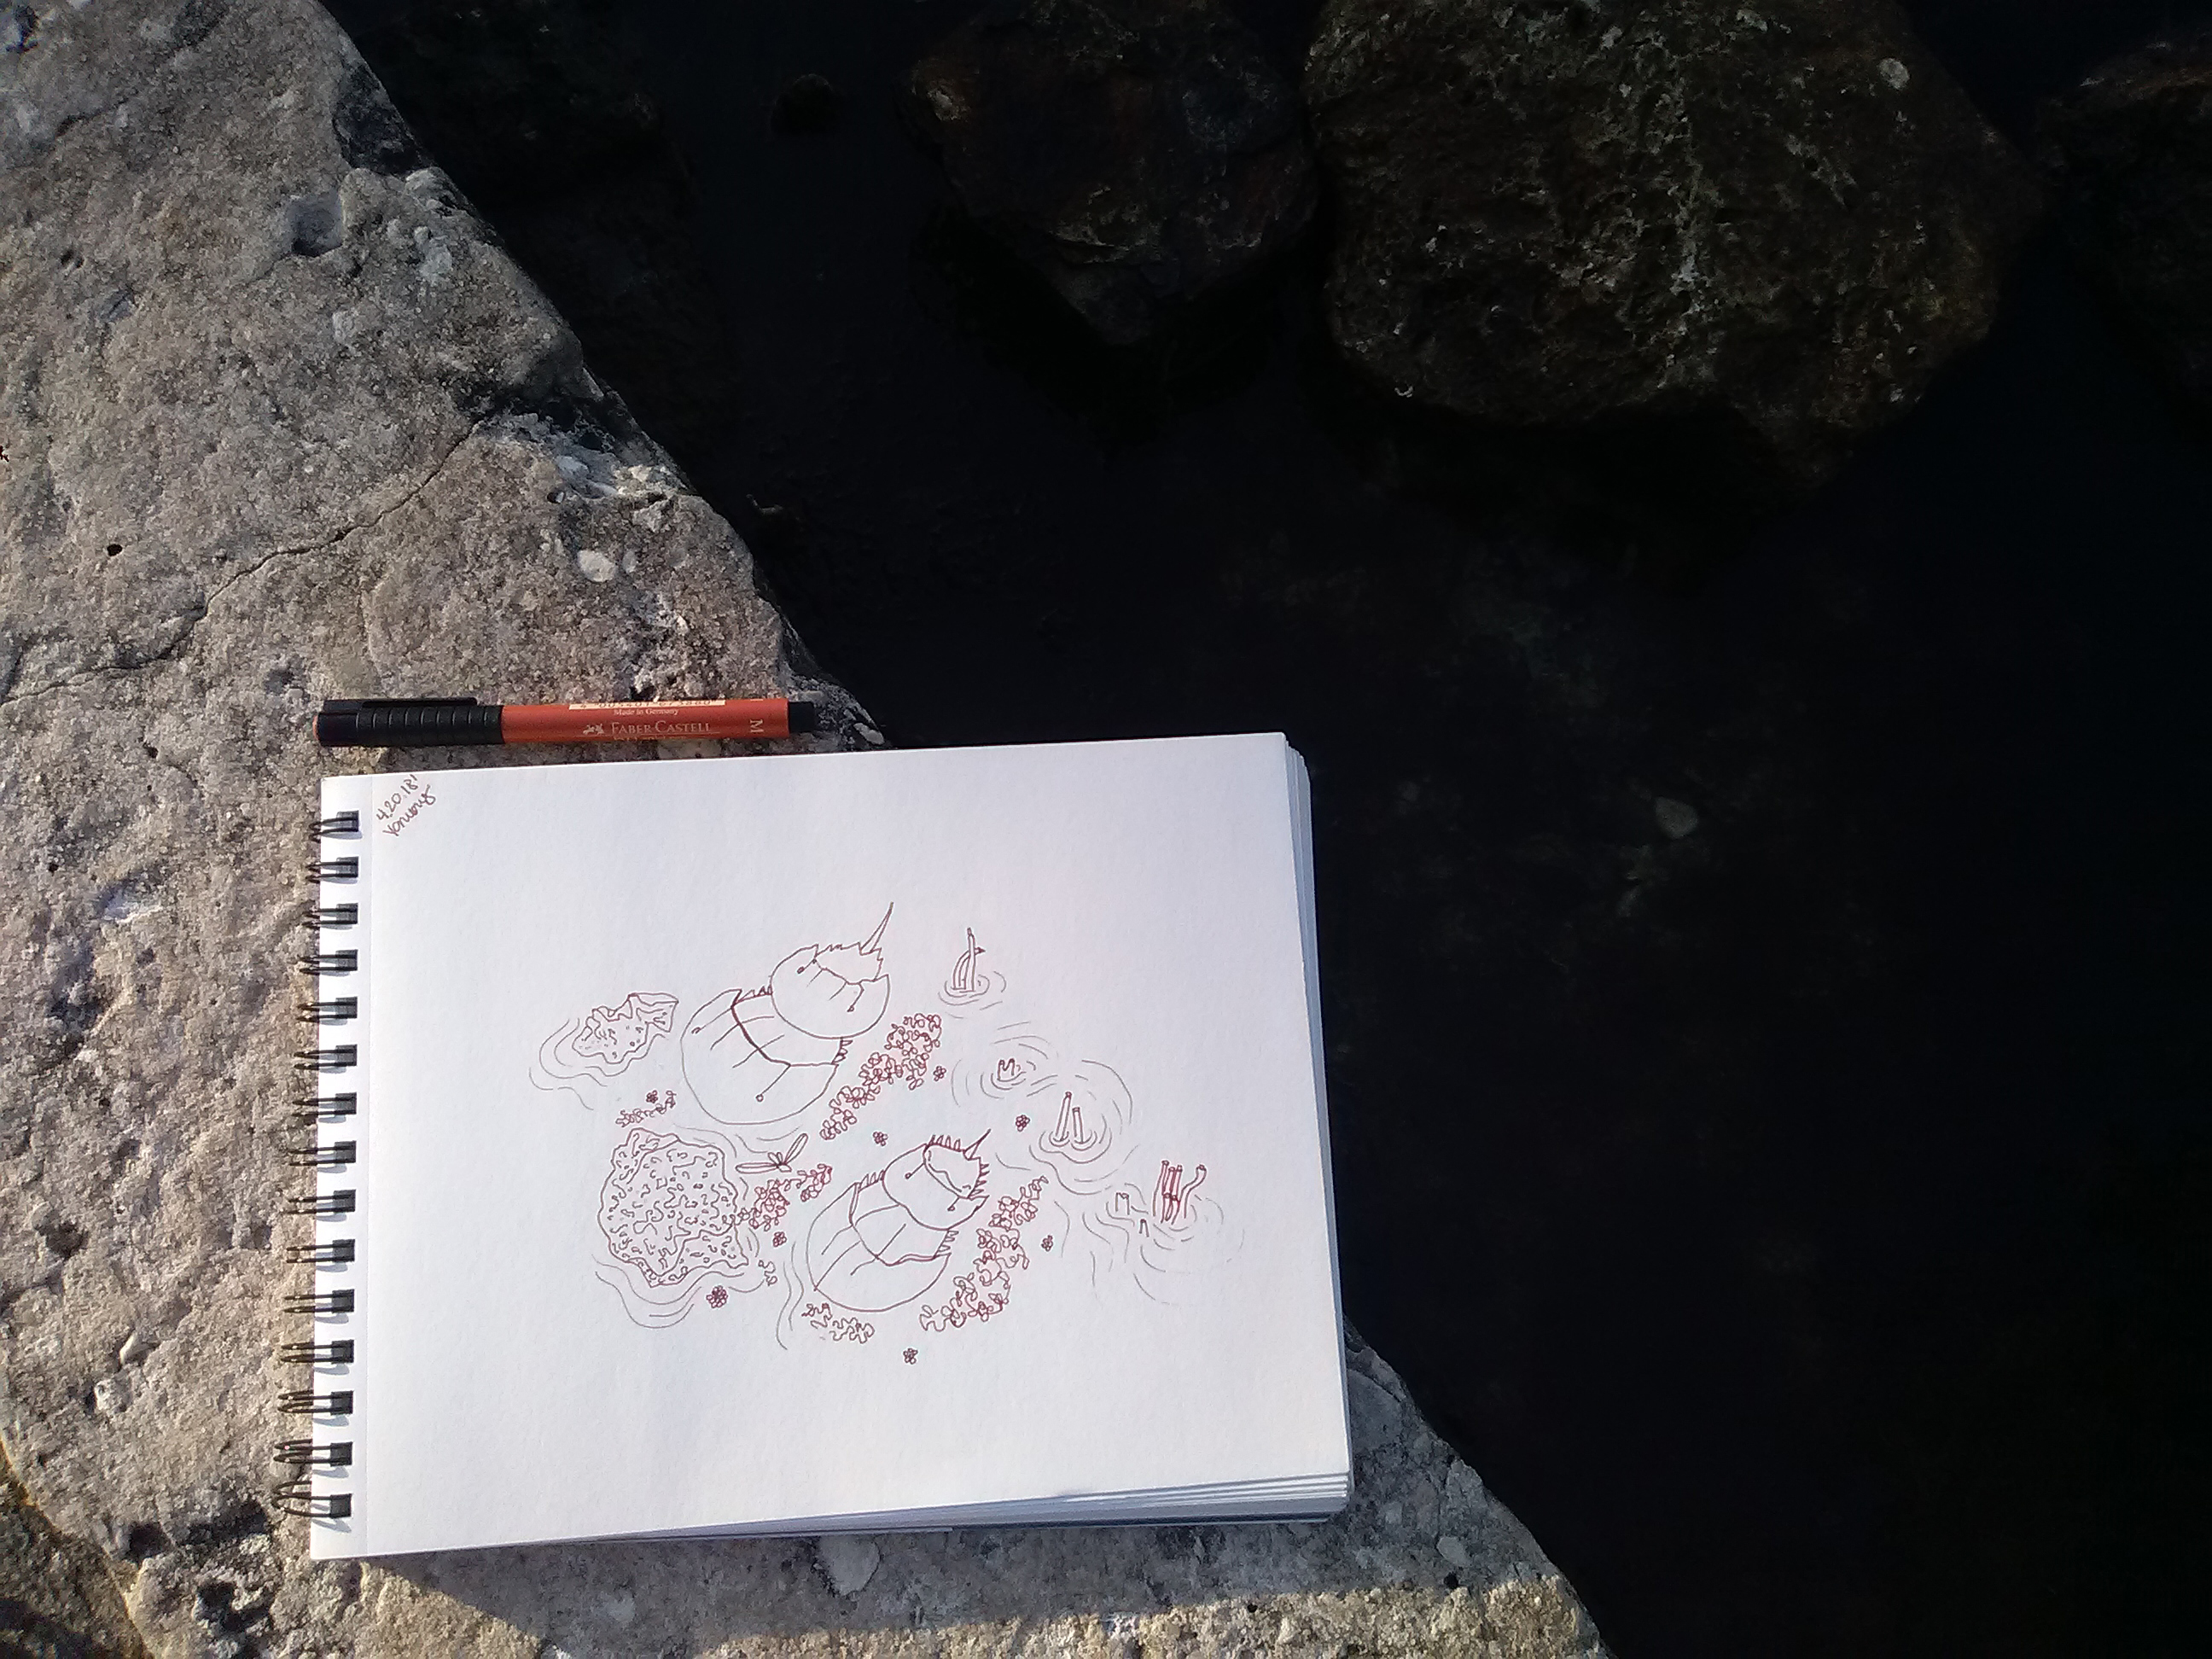 Ballast_point_park_drawing